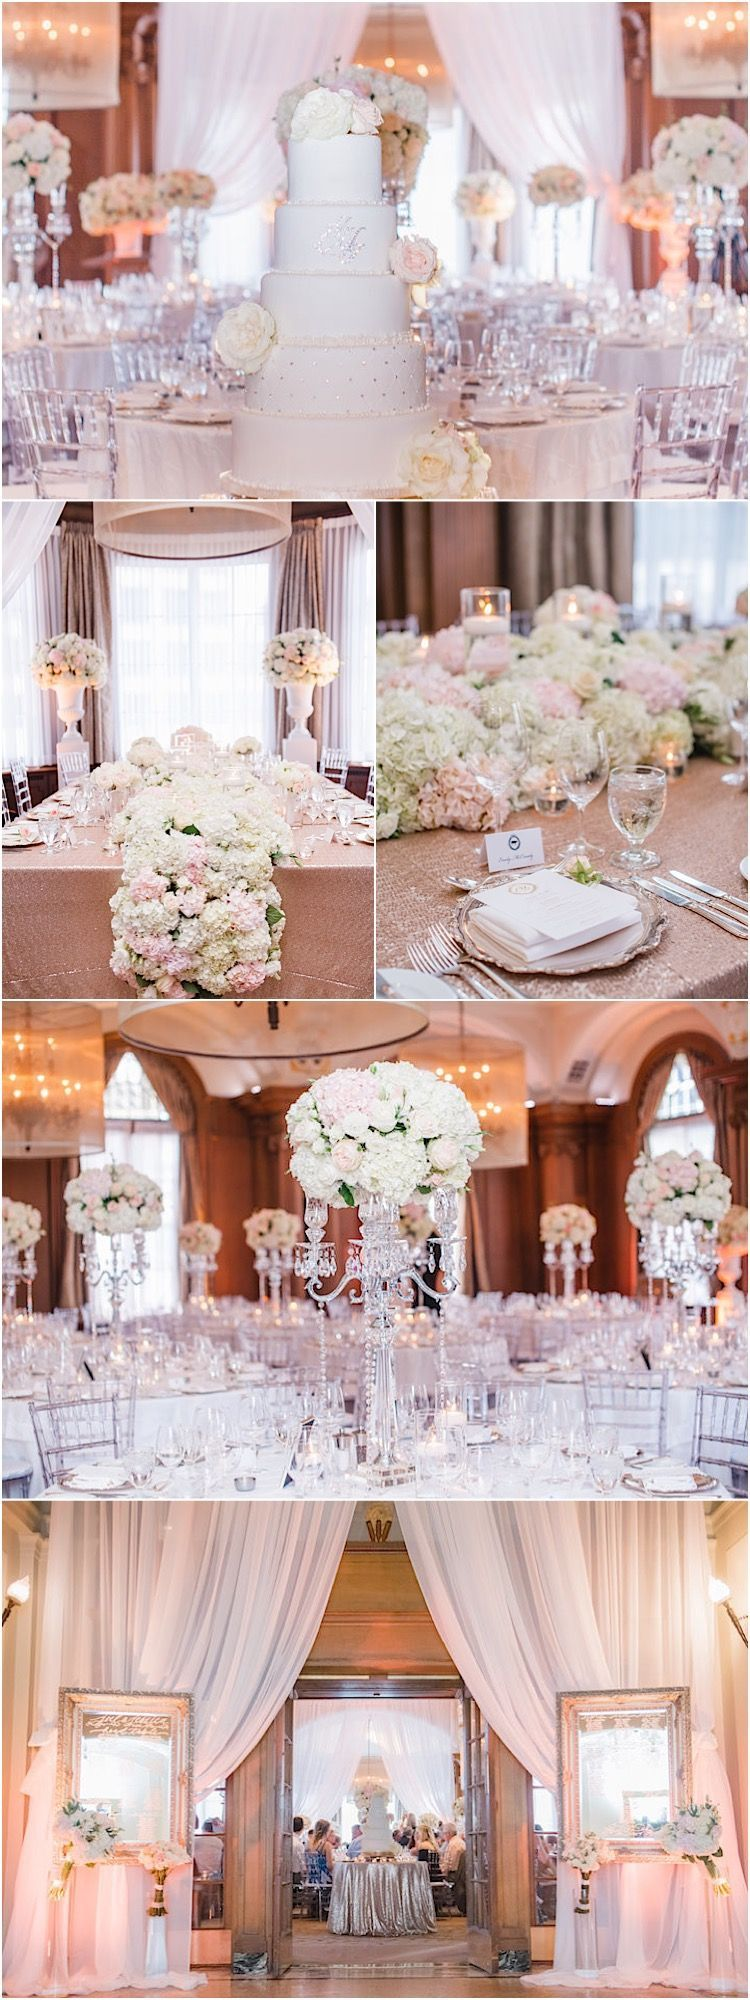 Wedding decoration ideas peach  Featured Blush Wedding Photography Glamorous wedding reception